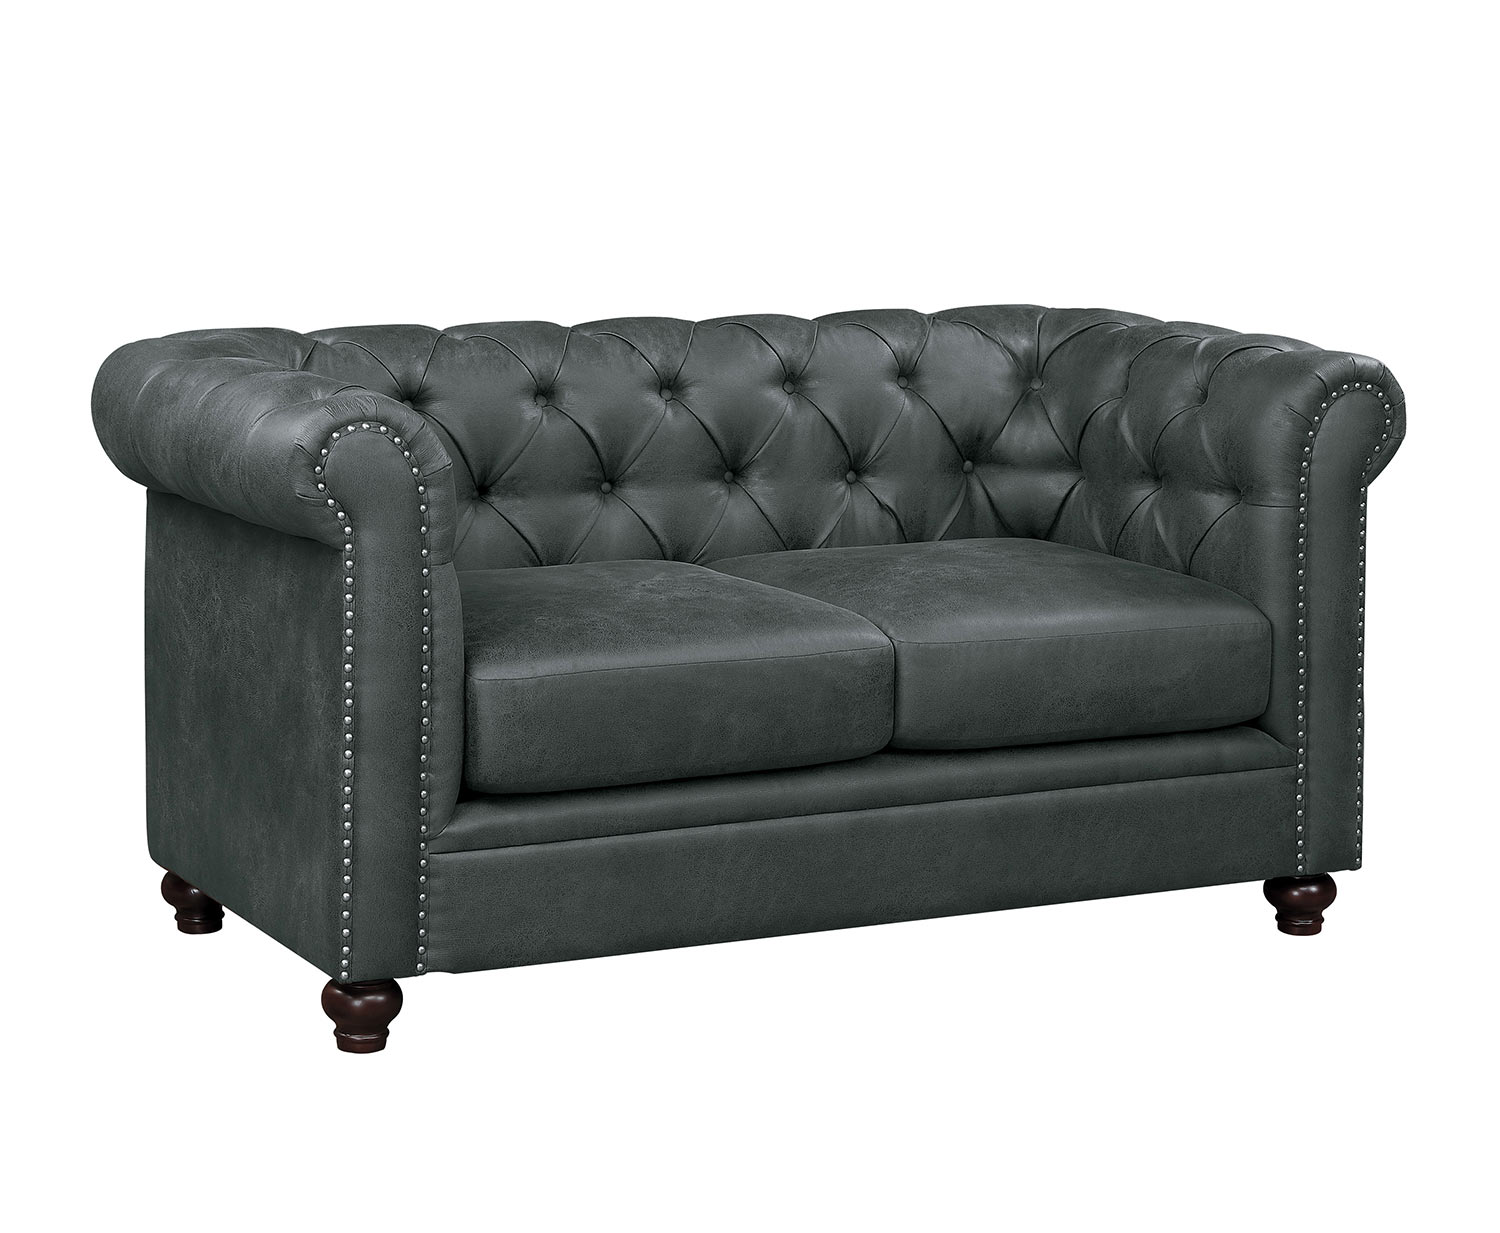 Homelegance Wallstone Love Seat - Gray